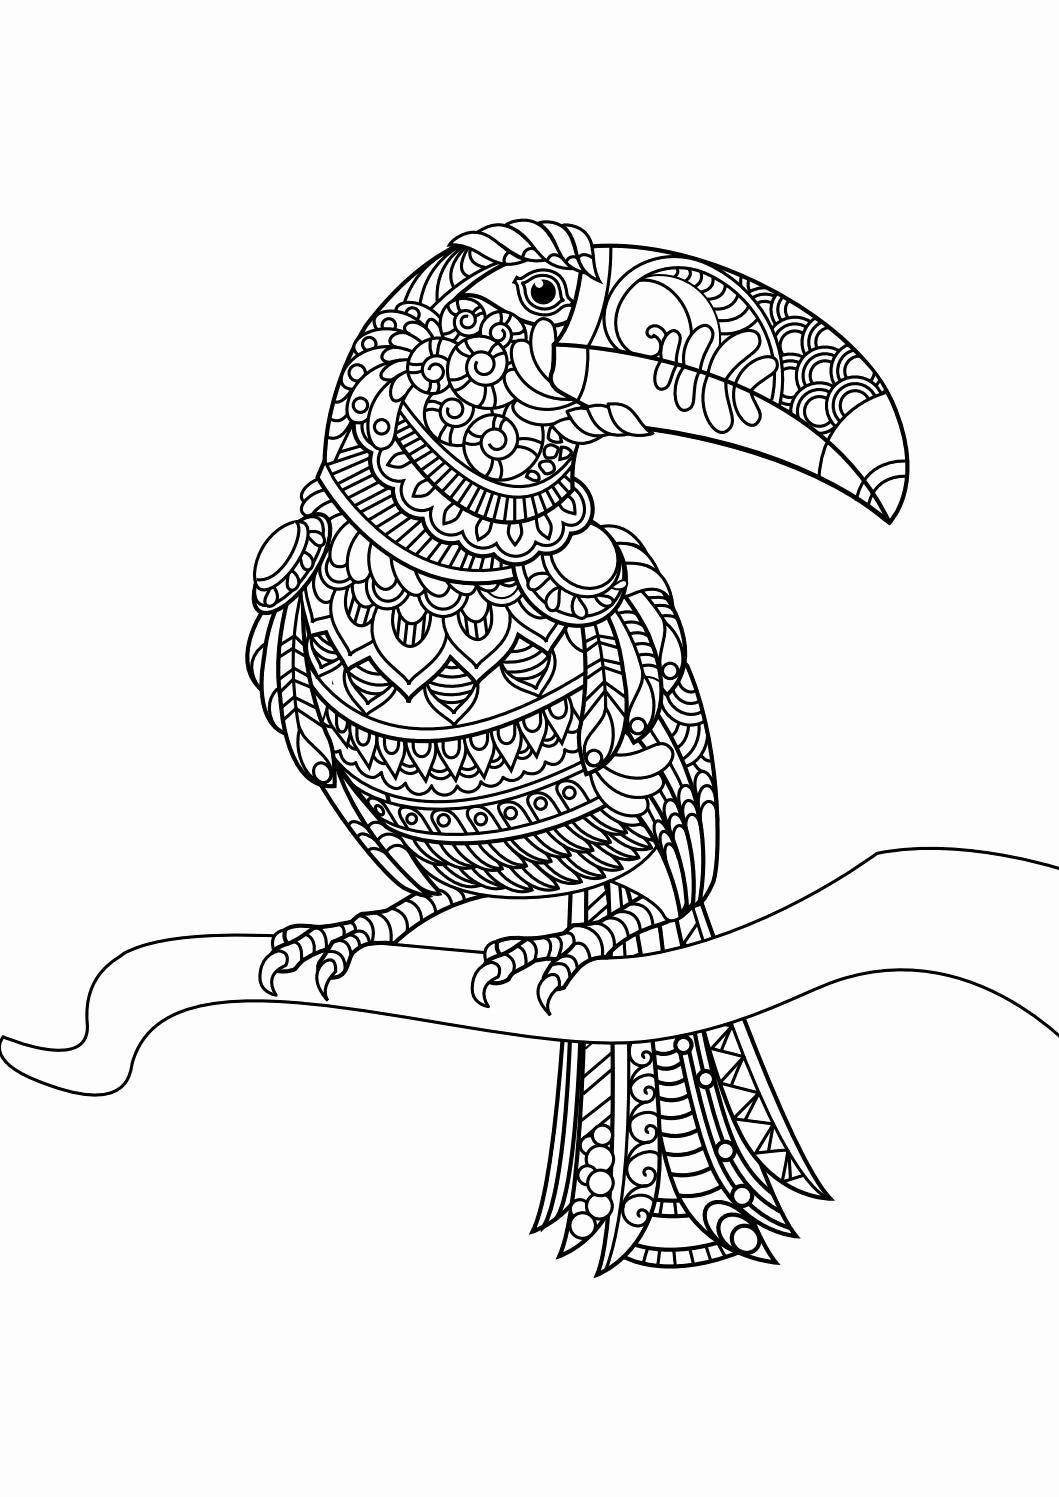 Animals Coloring Book Pdf New Animal Coloring Pages Pdf Bird Coloring Pages Cute Coloring Pages Animal Coloring Pages